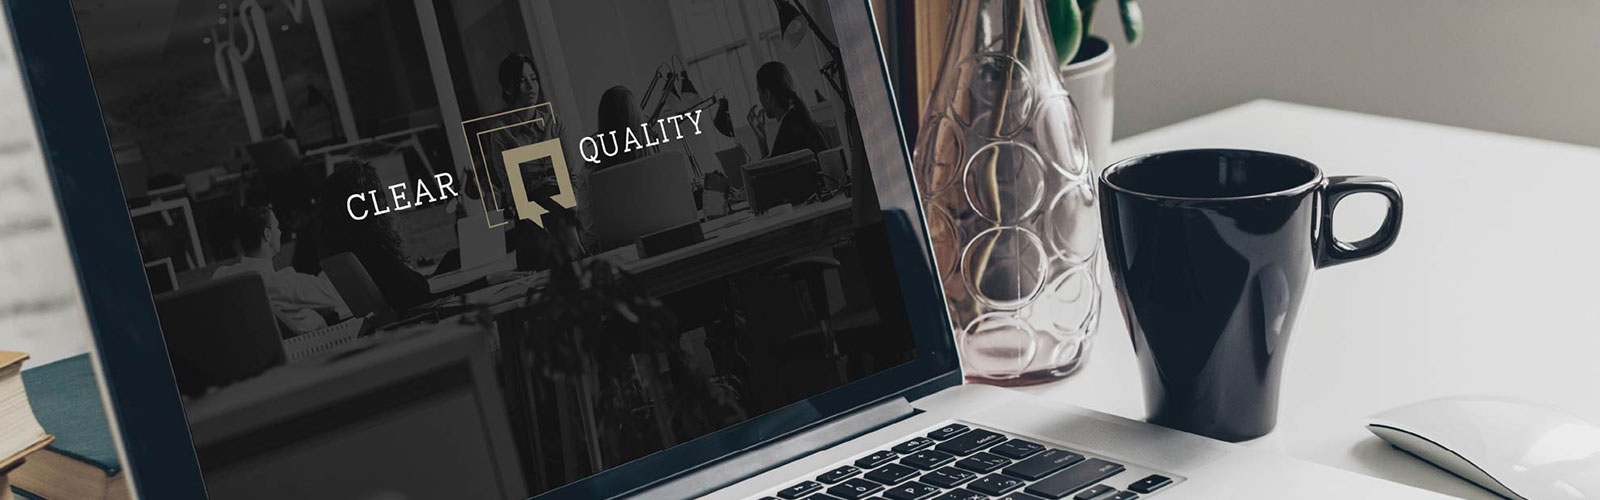 Contact Clear Quality Consultants | QMS Manager Support